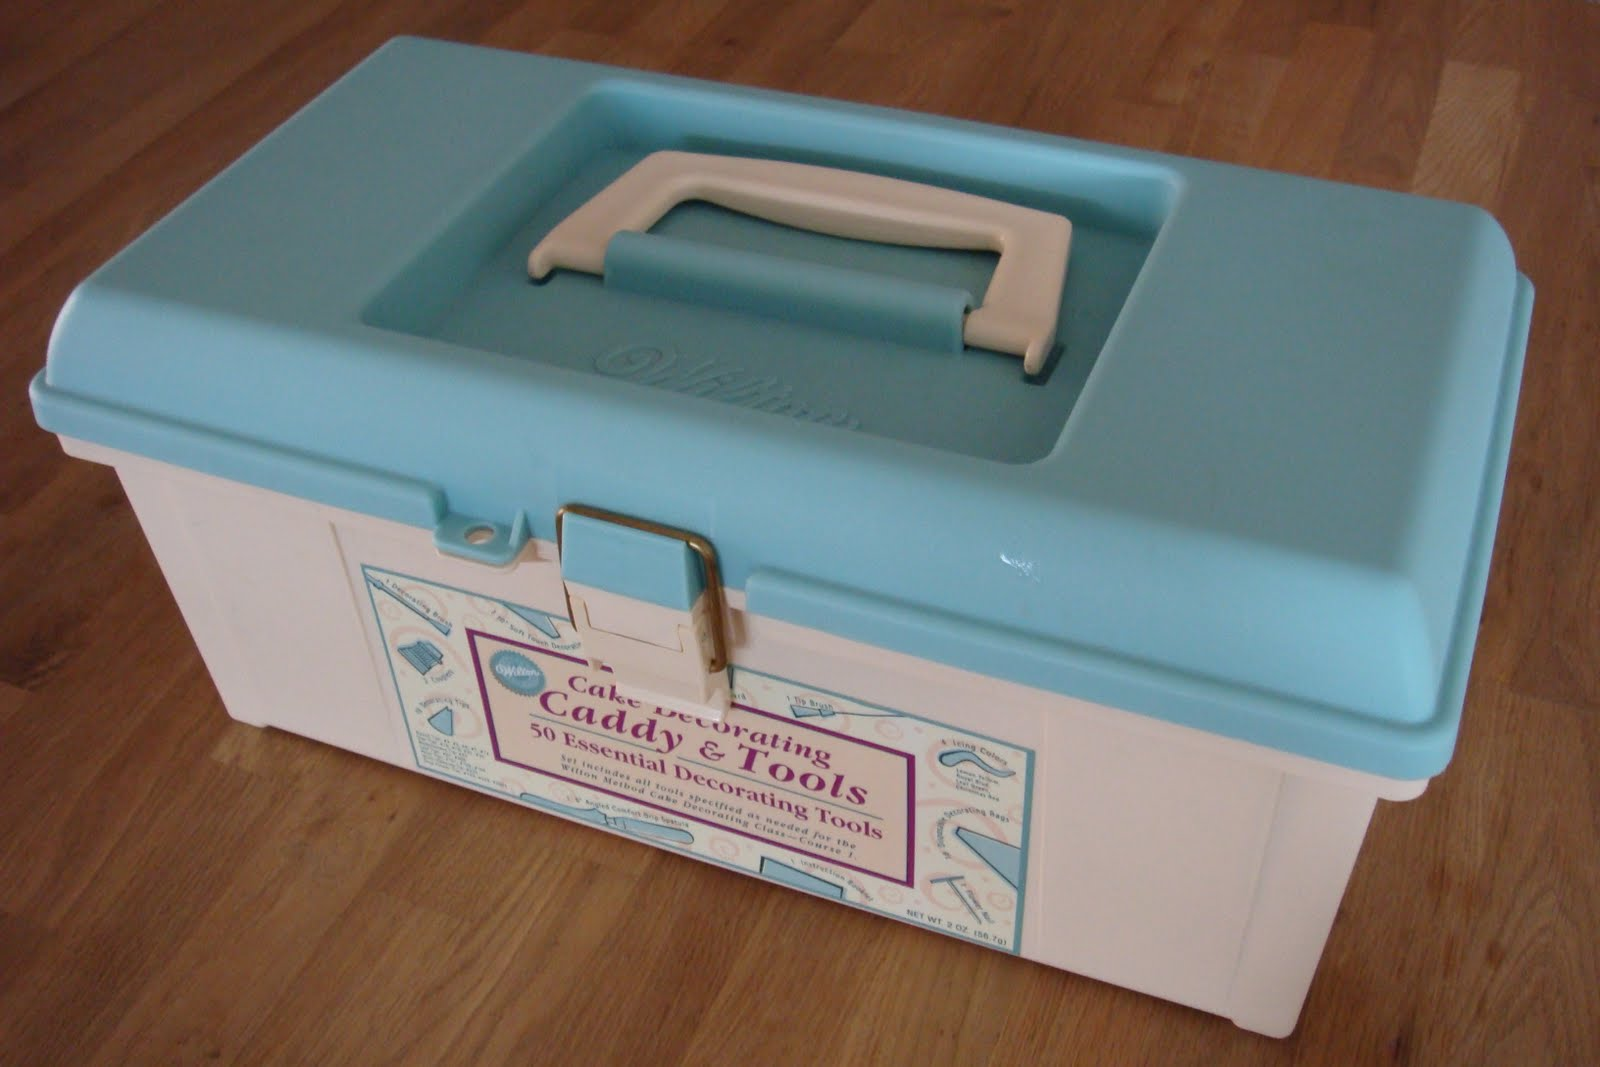 Cookiss @ Sheryl s Kitchen: My Wilton Cake Decorating Tool Box